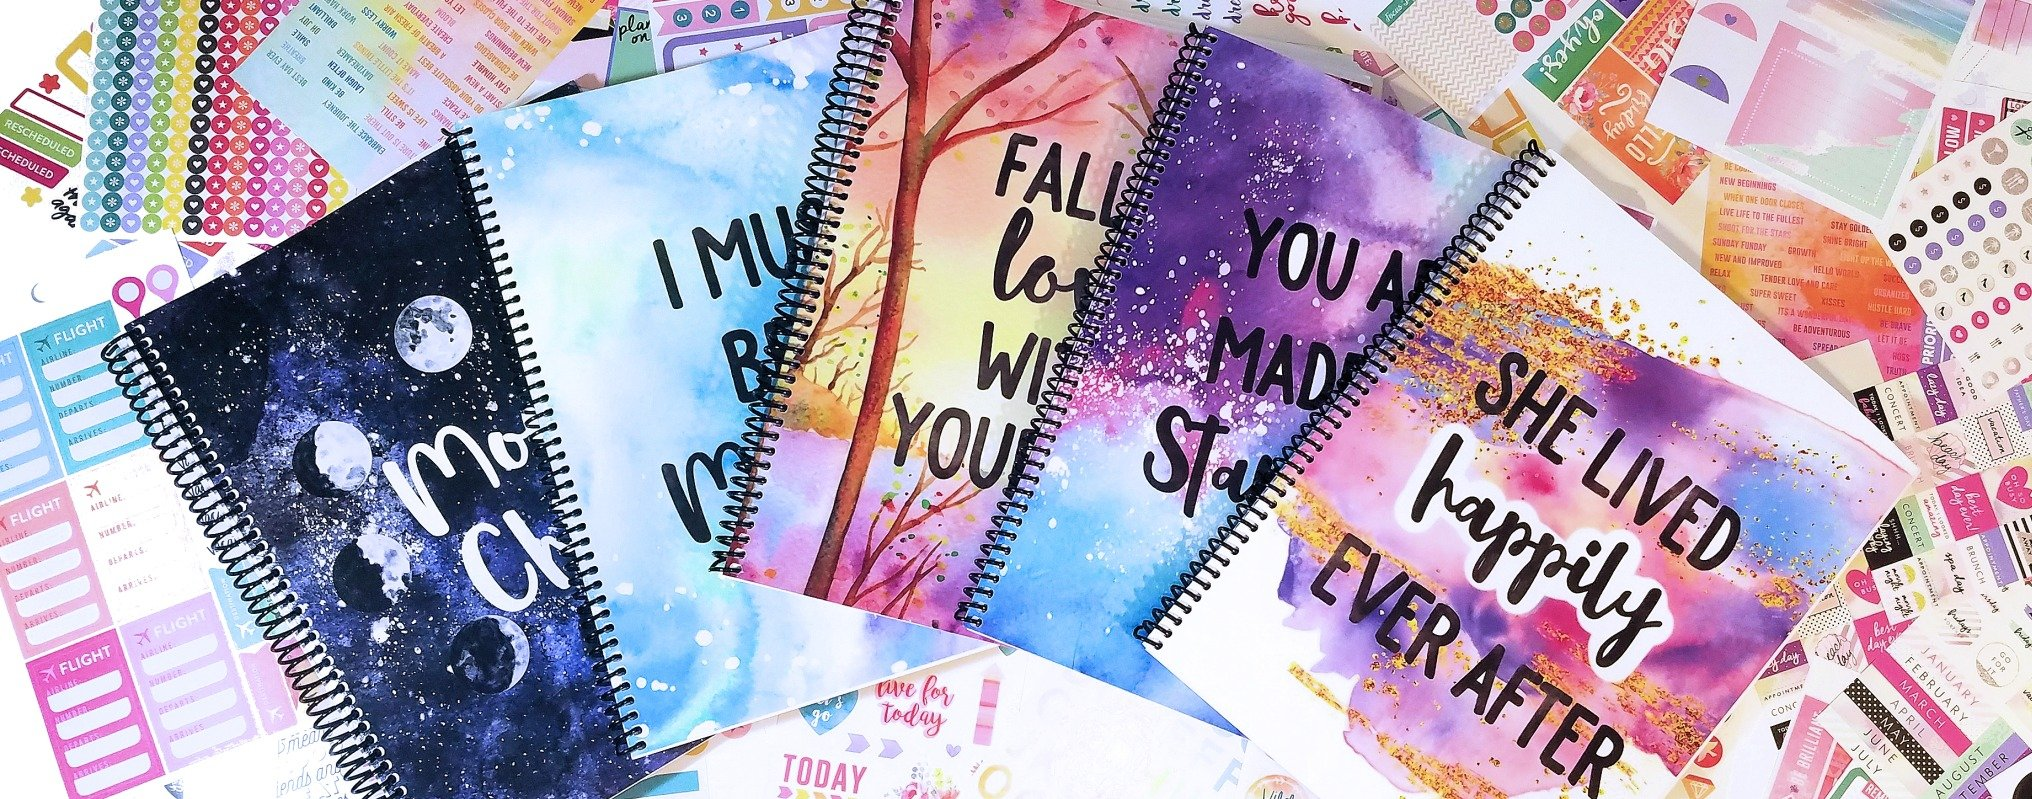 self-love workbook planner